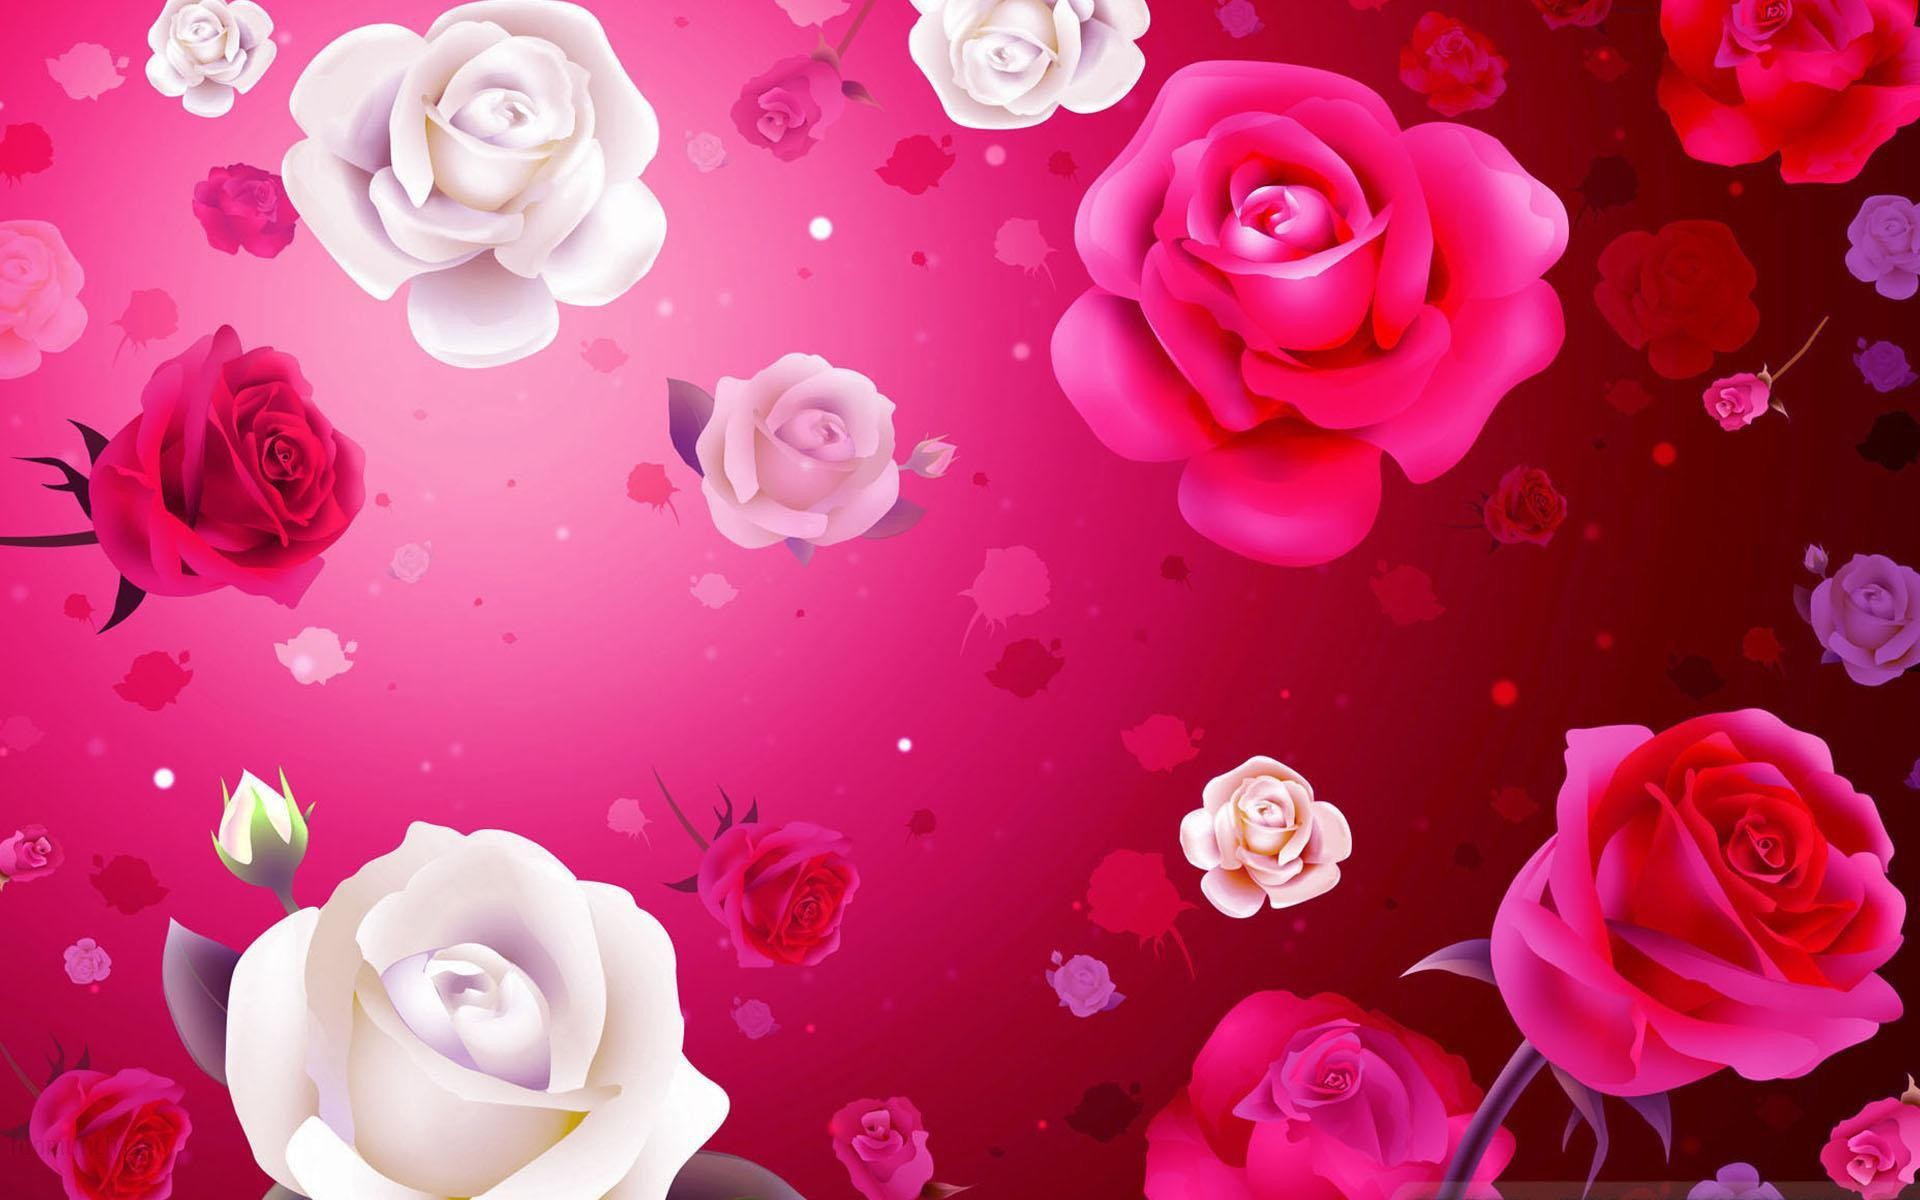 55 valentines day backgrounds download free amazing full hd